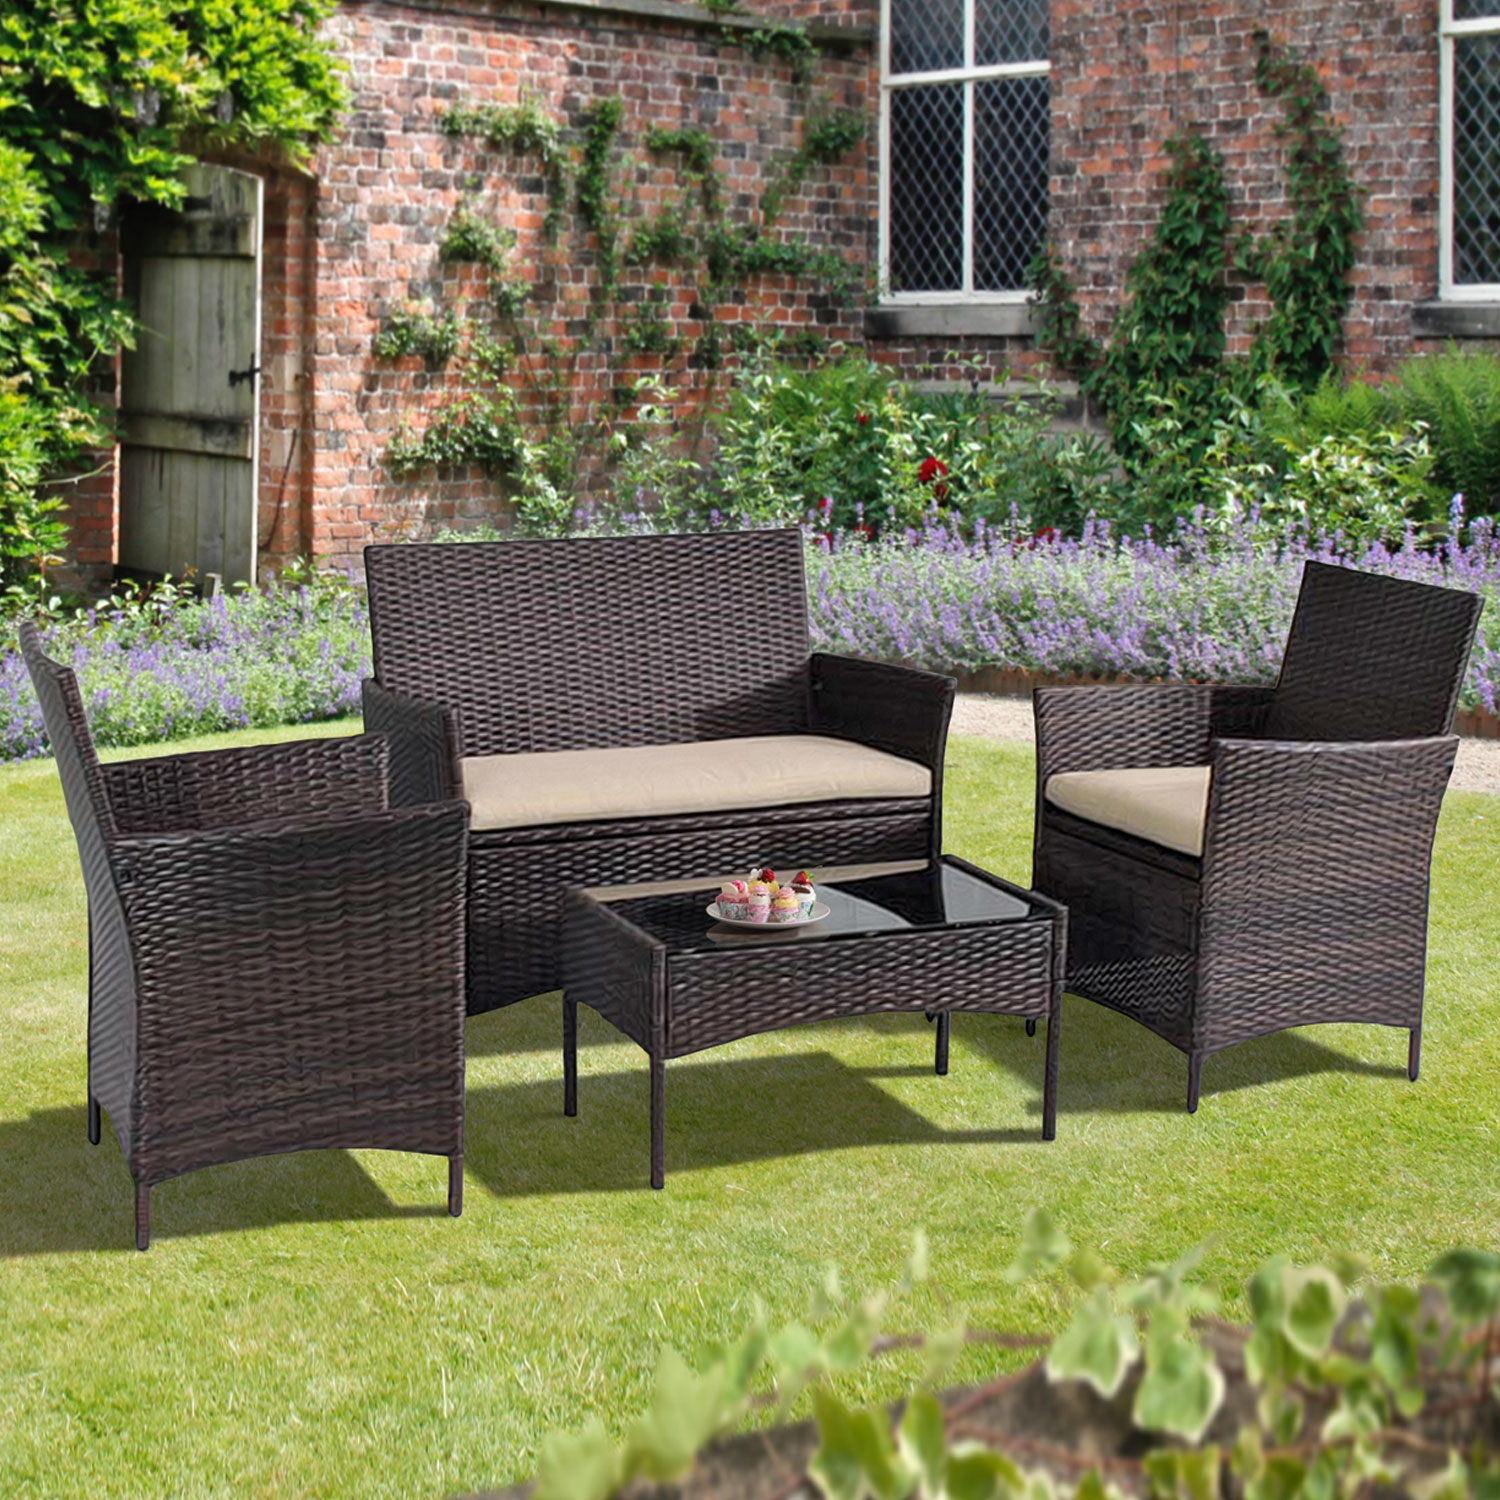 Helsinki Outdoor Sofa Set in Brown Rattan